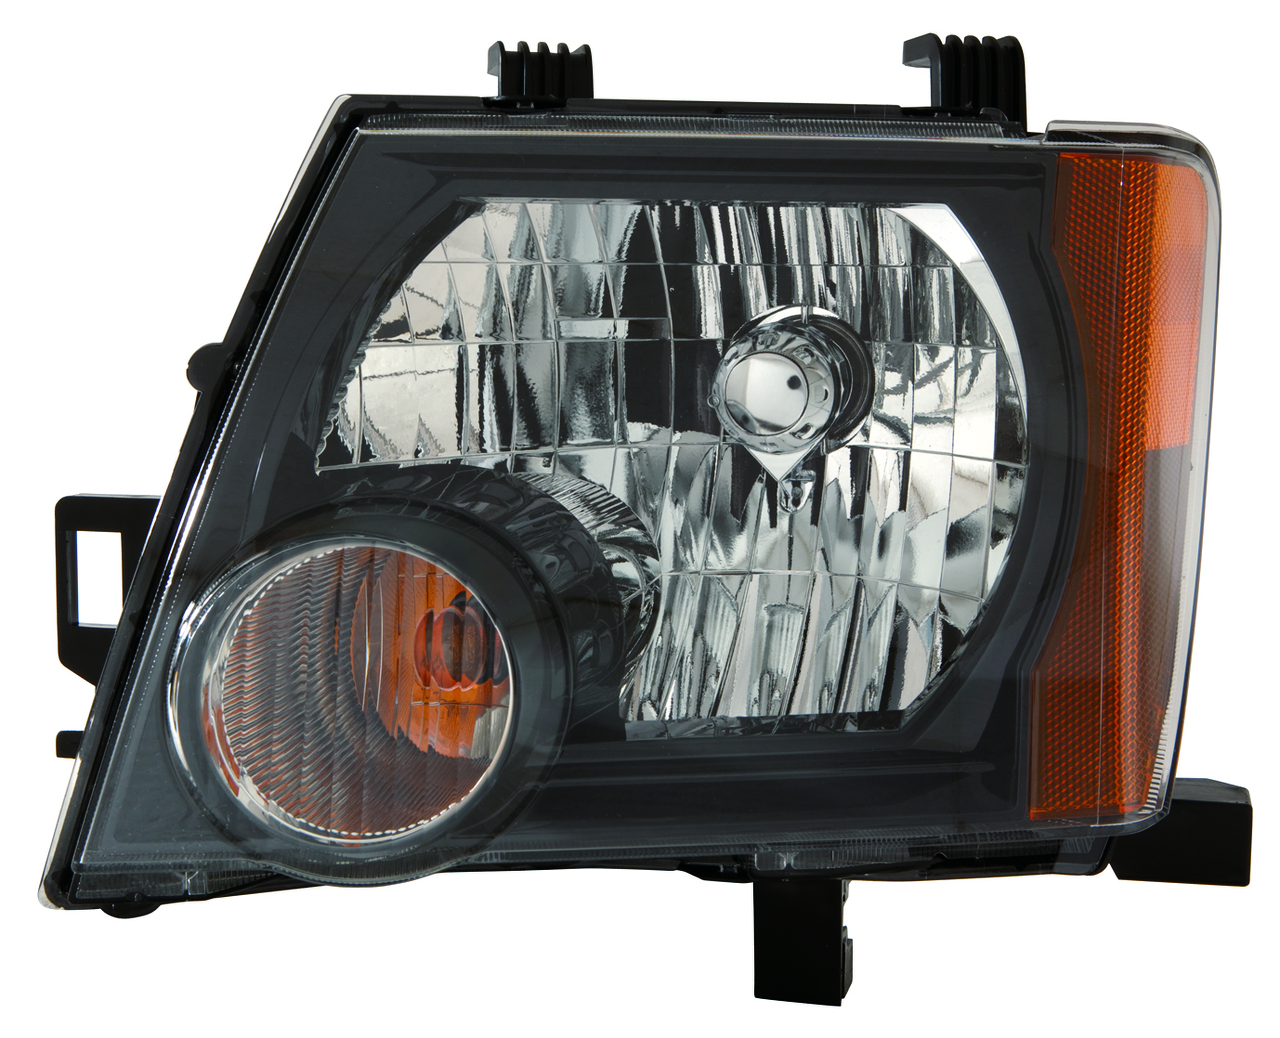 Nissan Xterra 2009 2010 2011 2012 2013 2014 2015 left driver headlight S / X Model